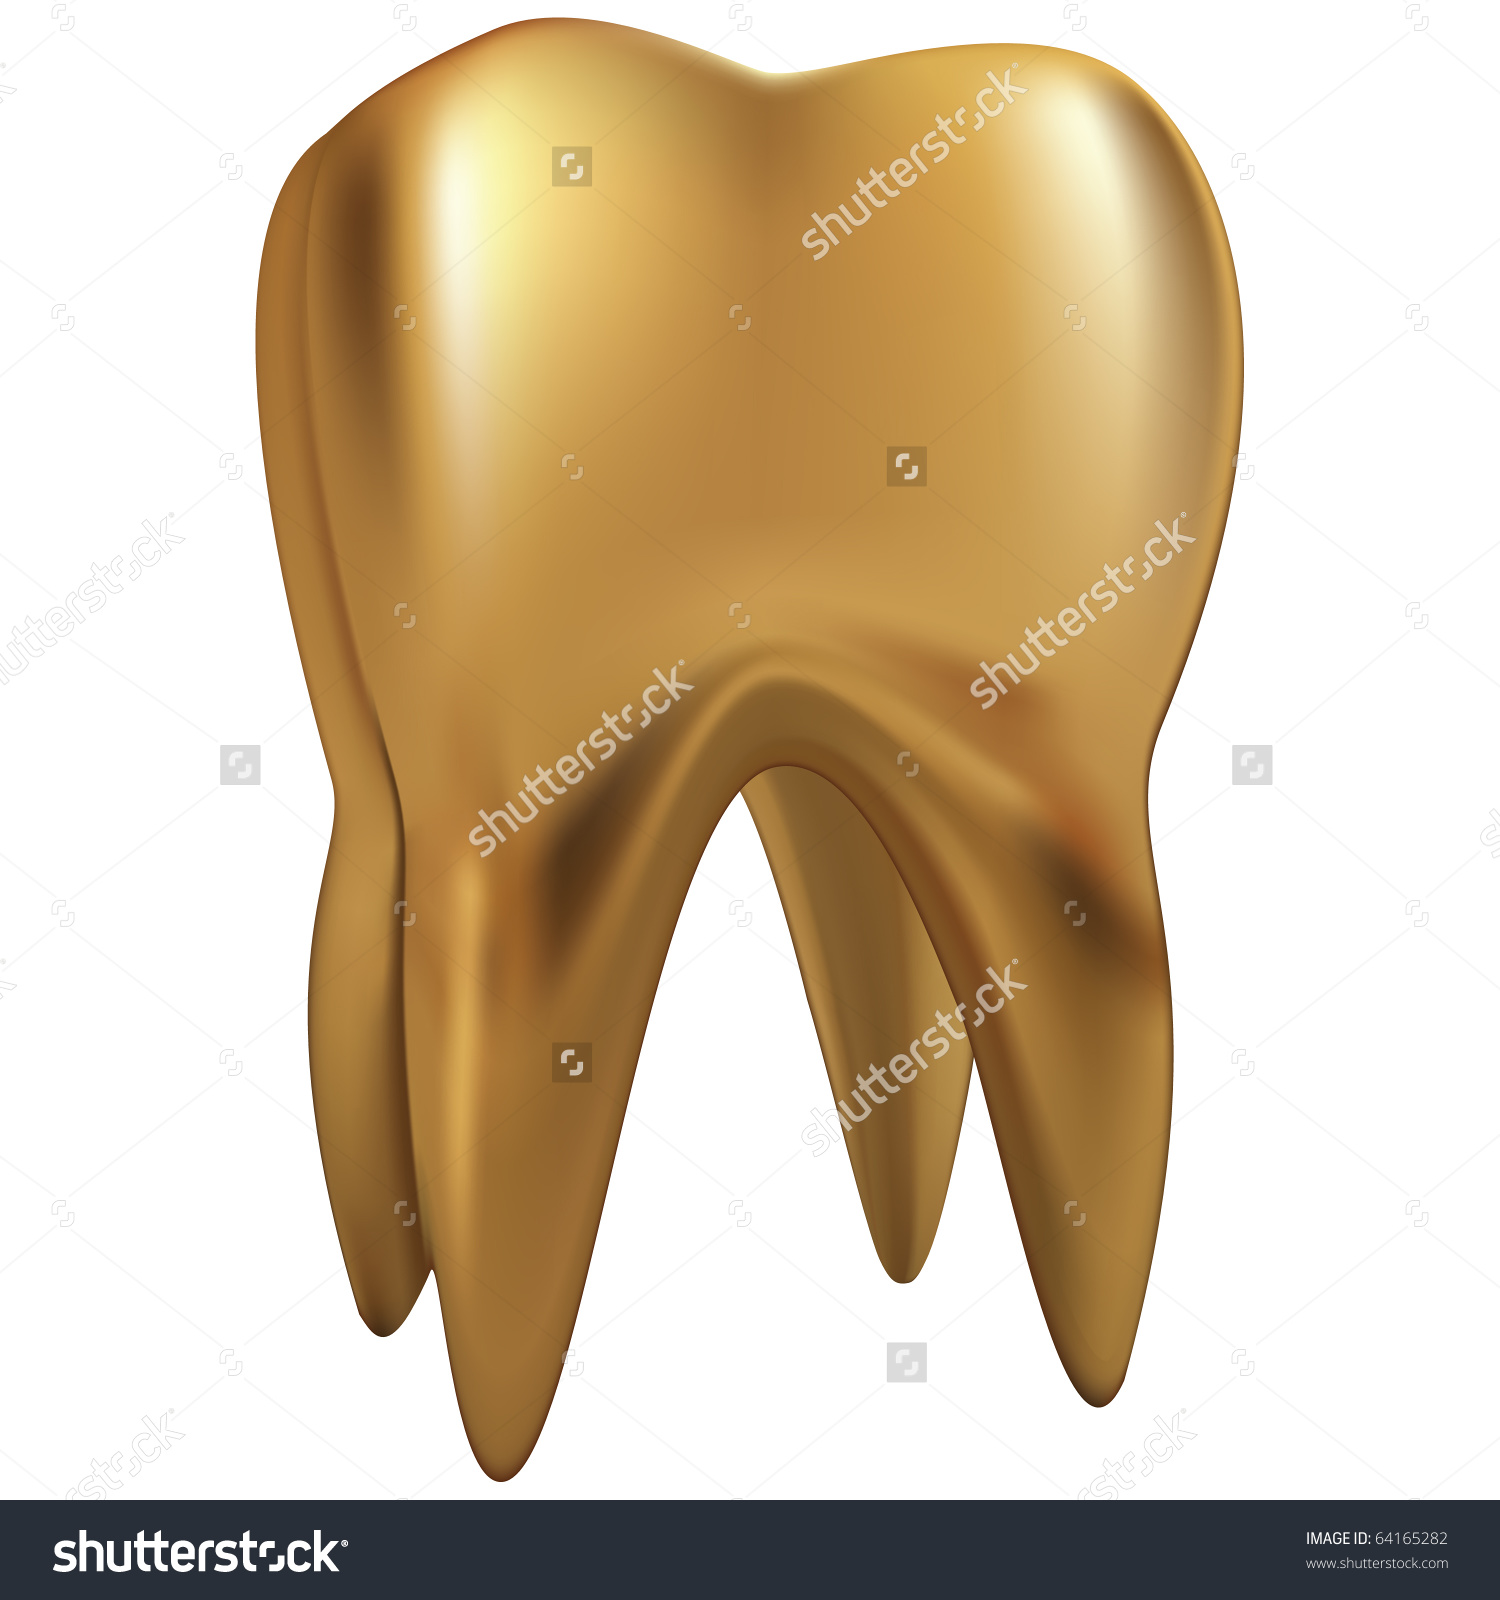 Golden tooth clipart.